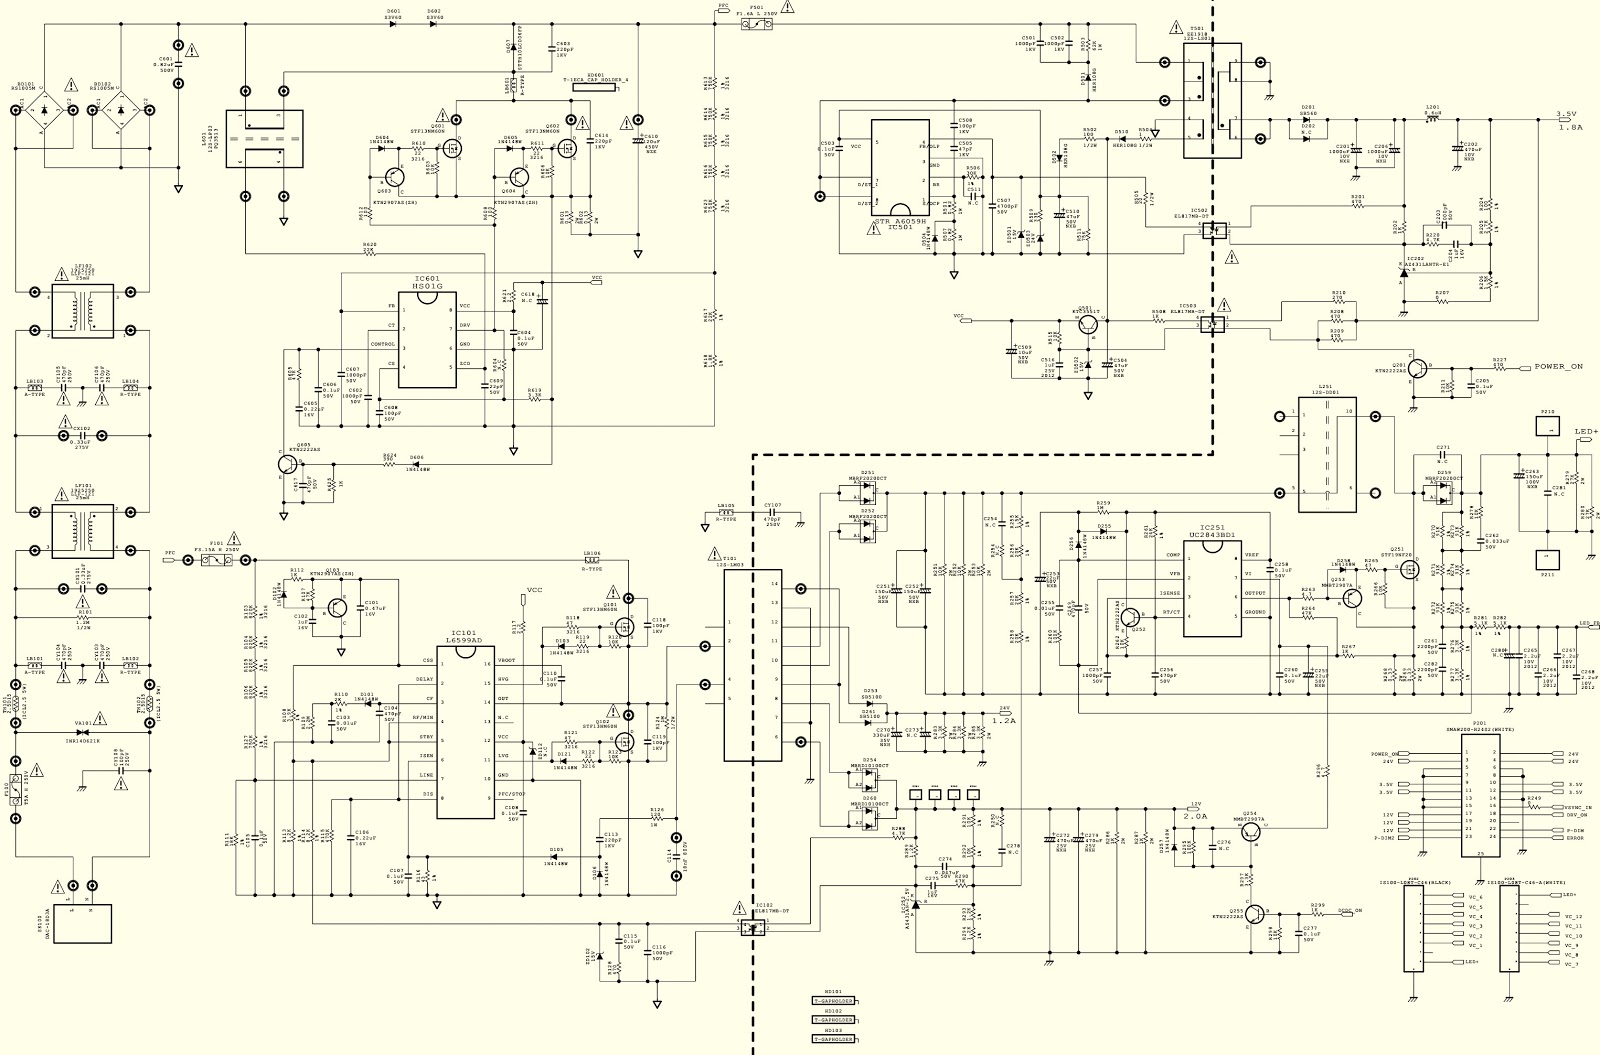 Lg Eay62512702 Smps Circuit Diagram Used With Lg47lm8600 Pwb Foil Side